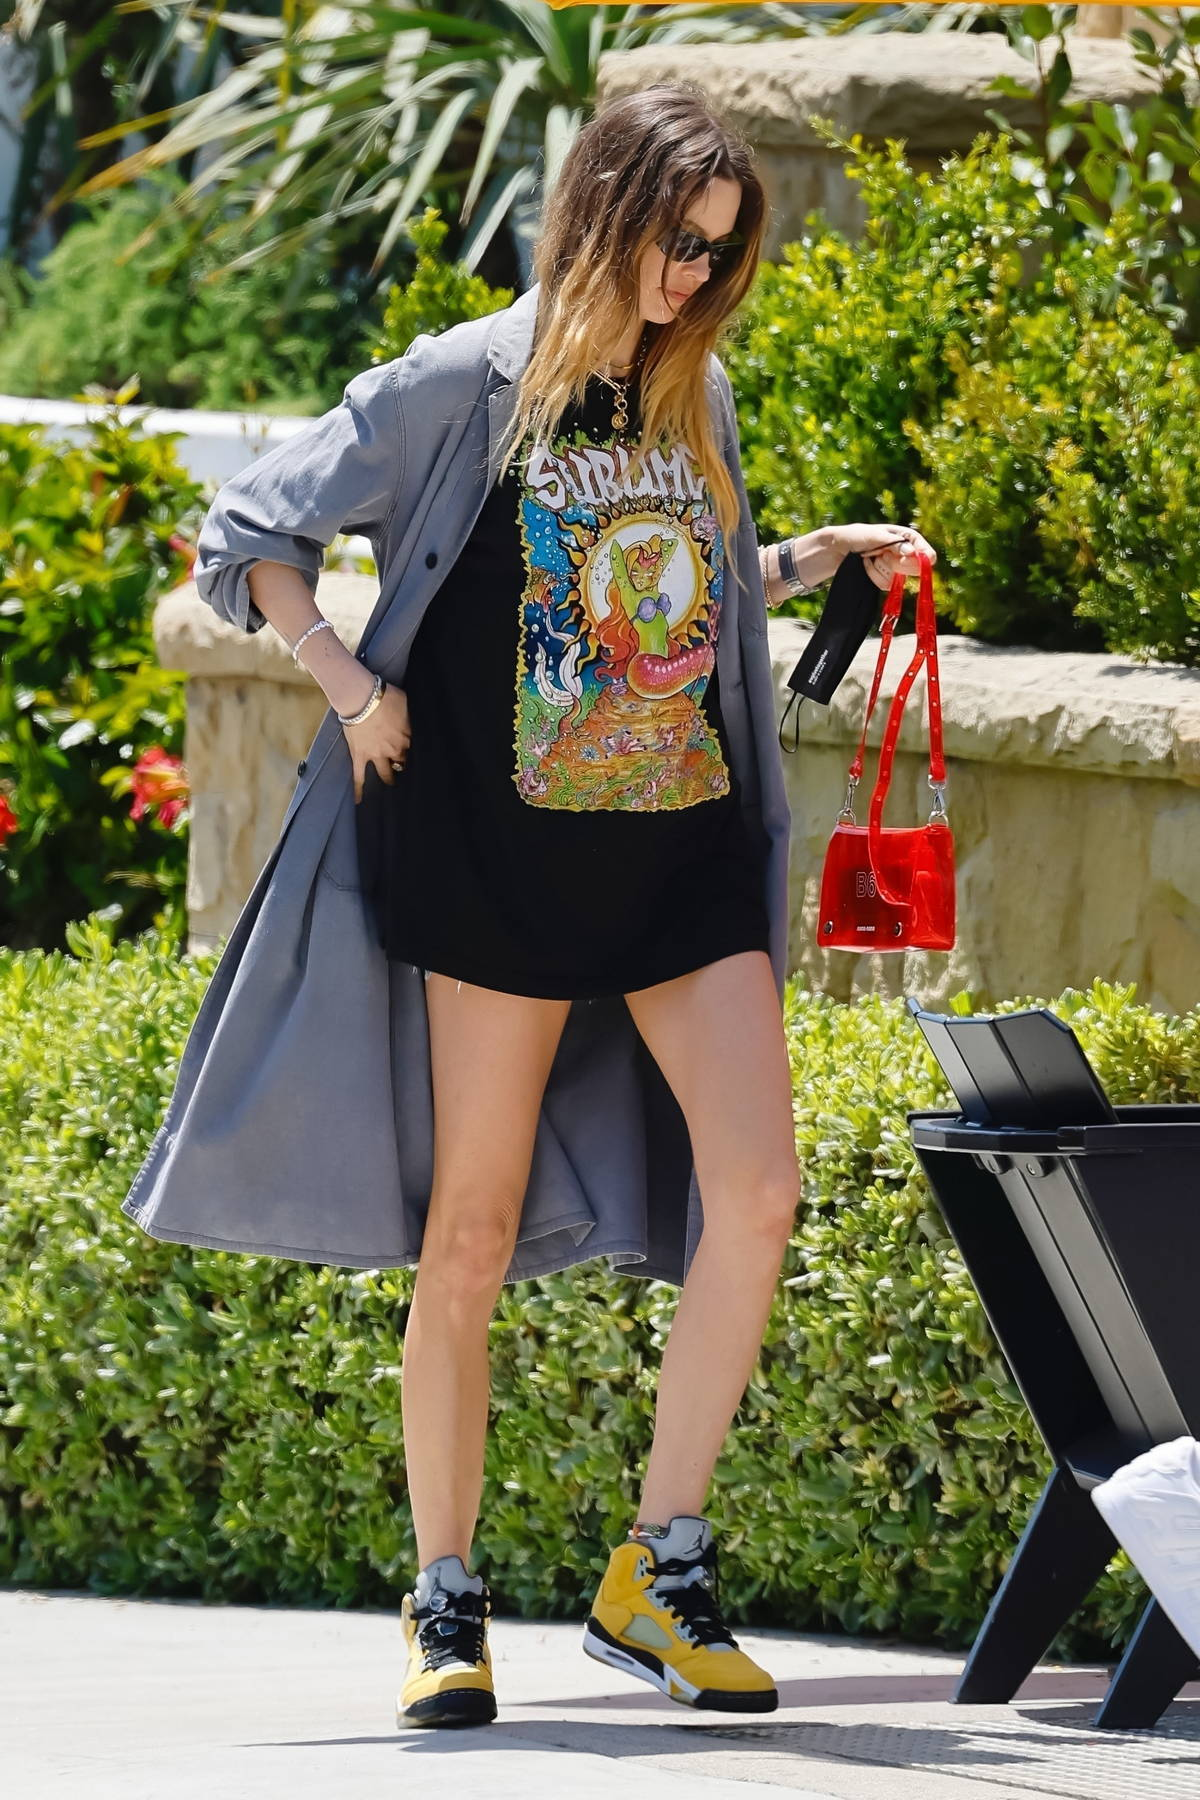 Behati Prinsloo and Adam Levine display their colorful style while out with Adam's dad in Montecino, California